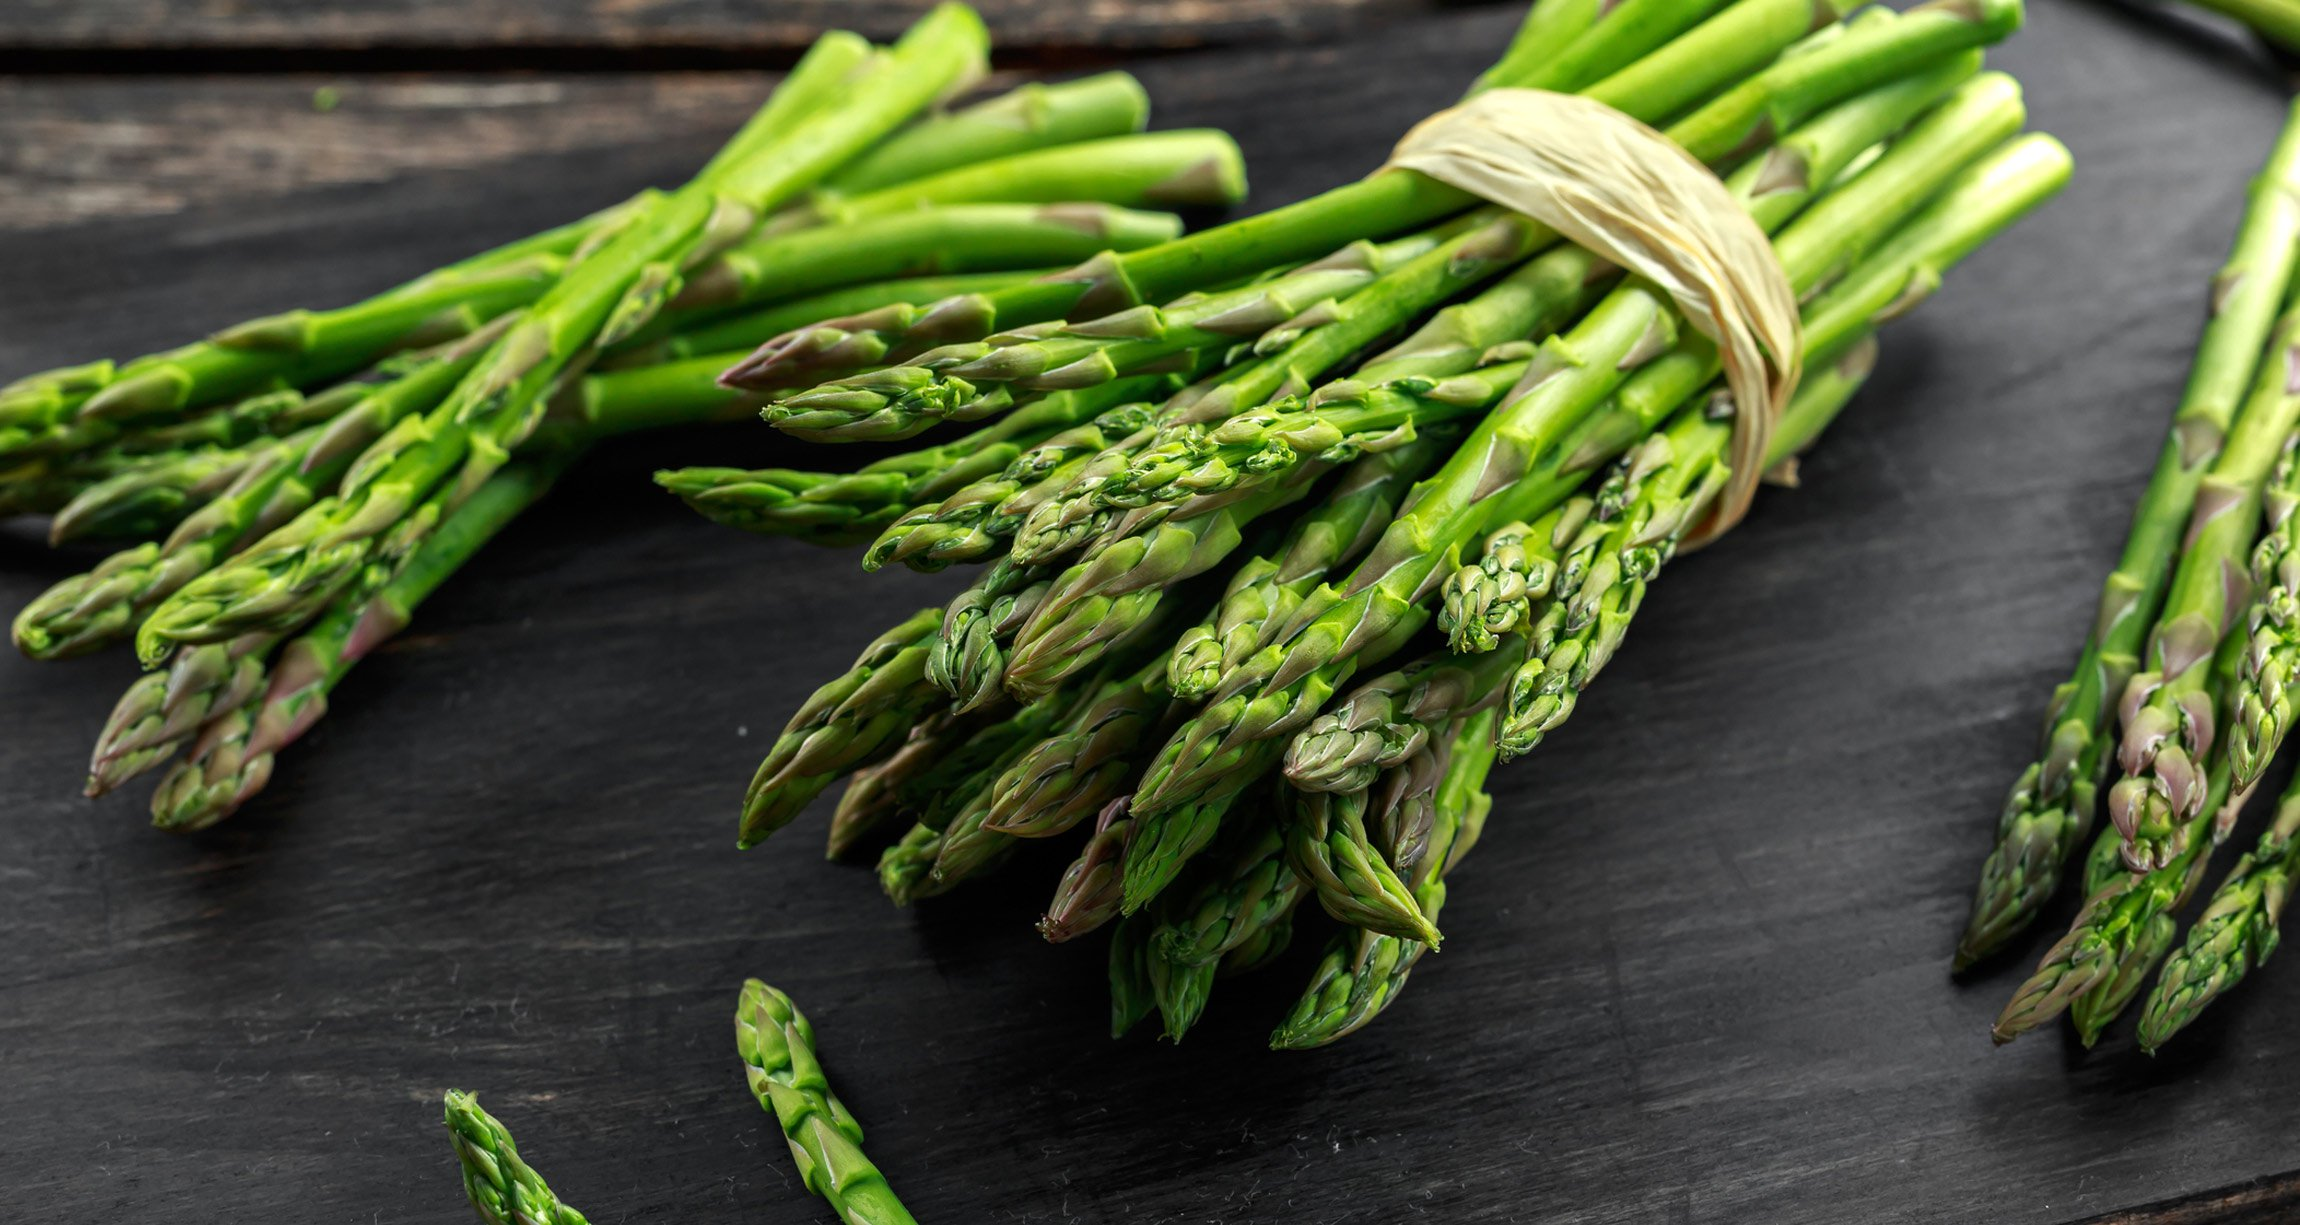 Raw vs Cooked Vegetables: The Healthiest Ways to Eat Your